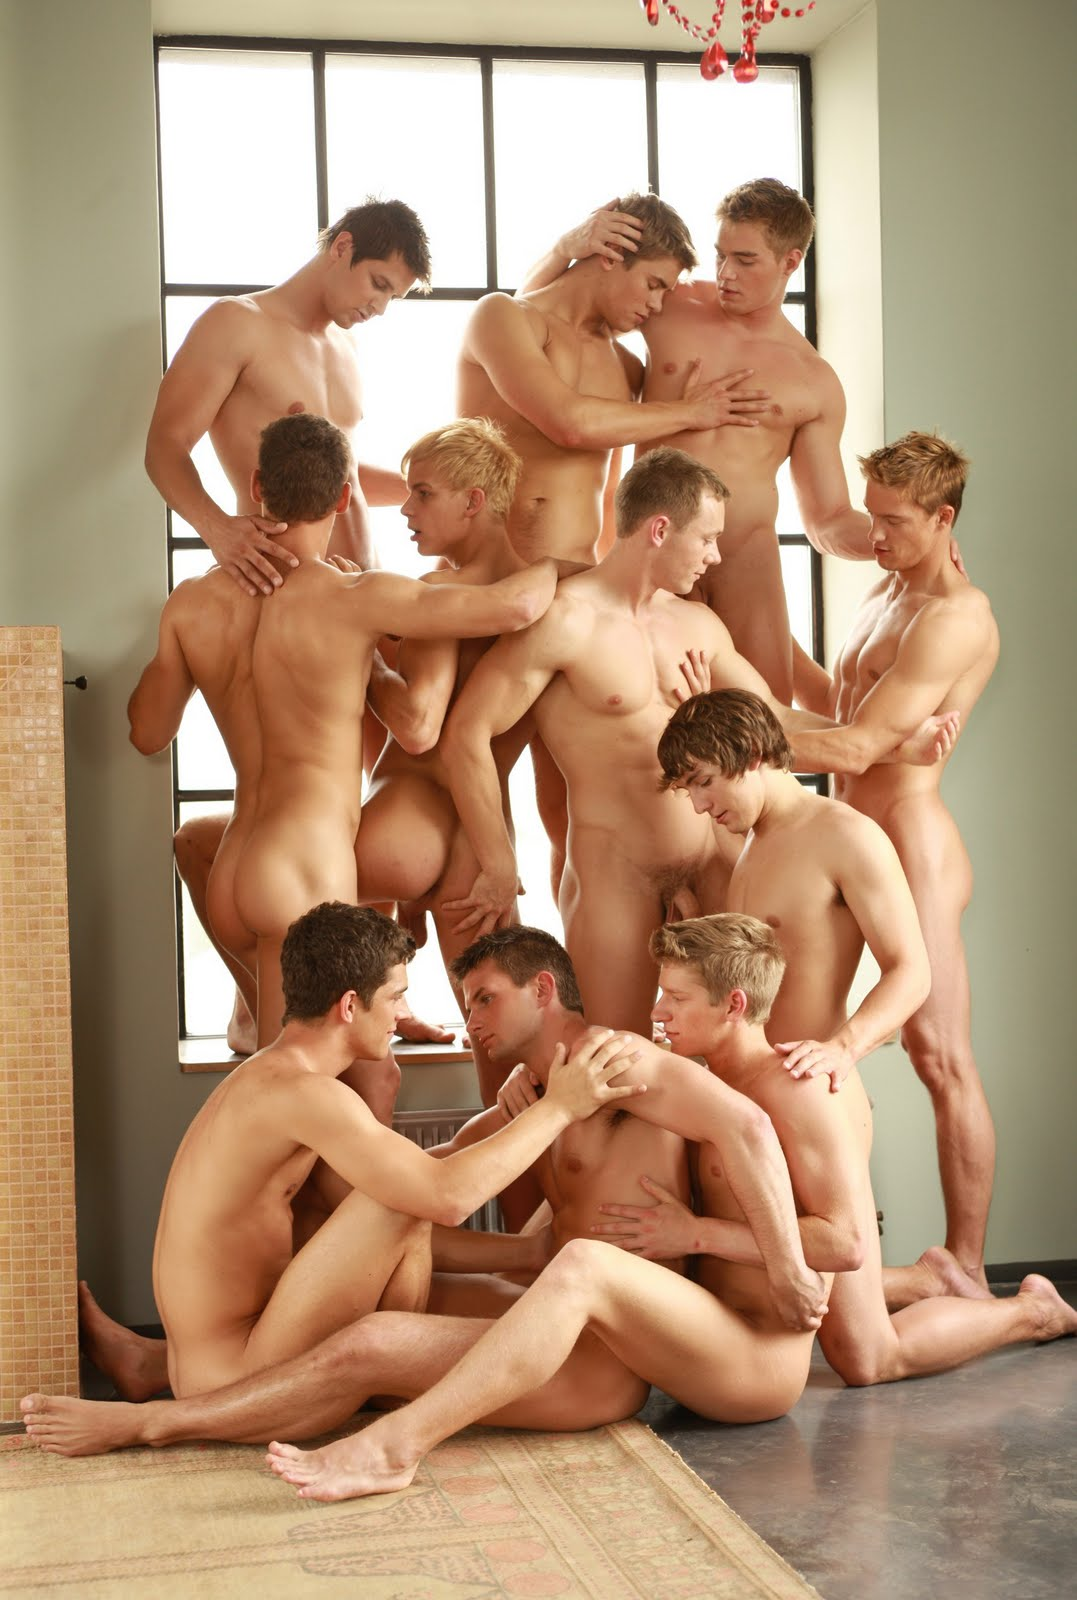 Pics naked party lads gay a few drinks and this group of harsh